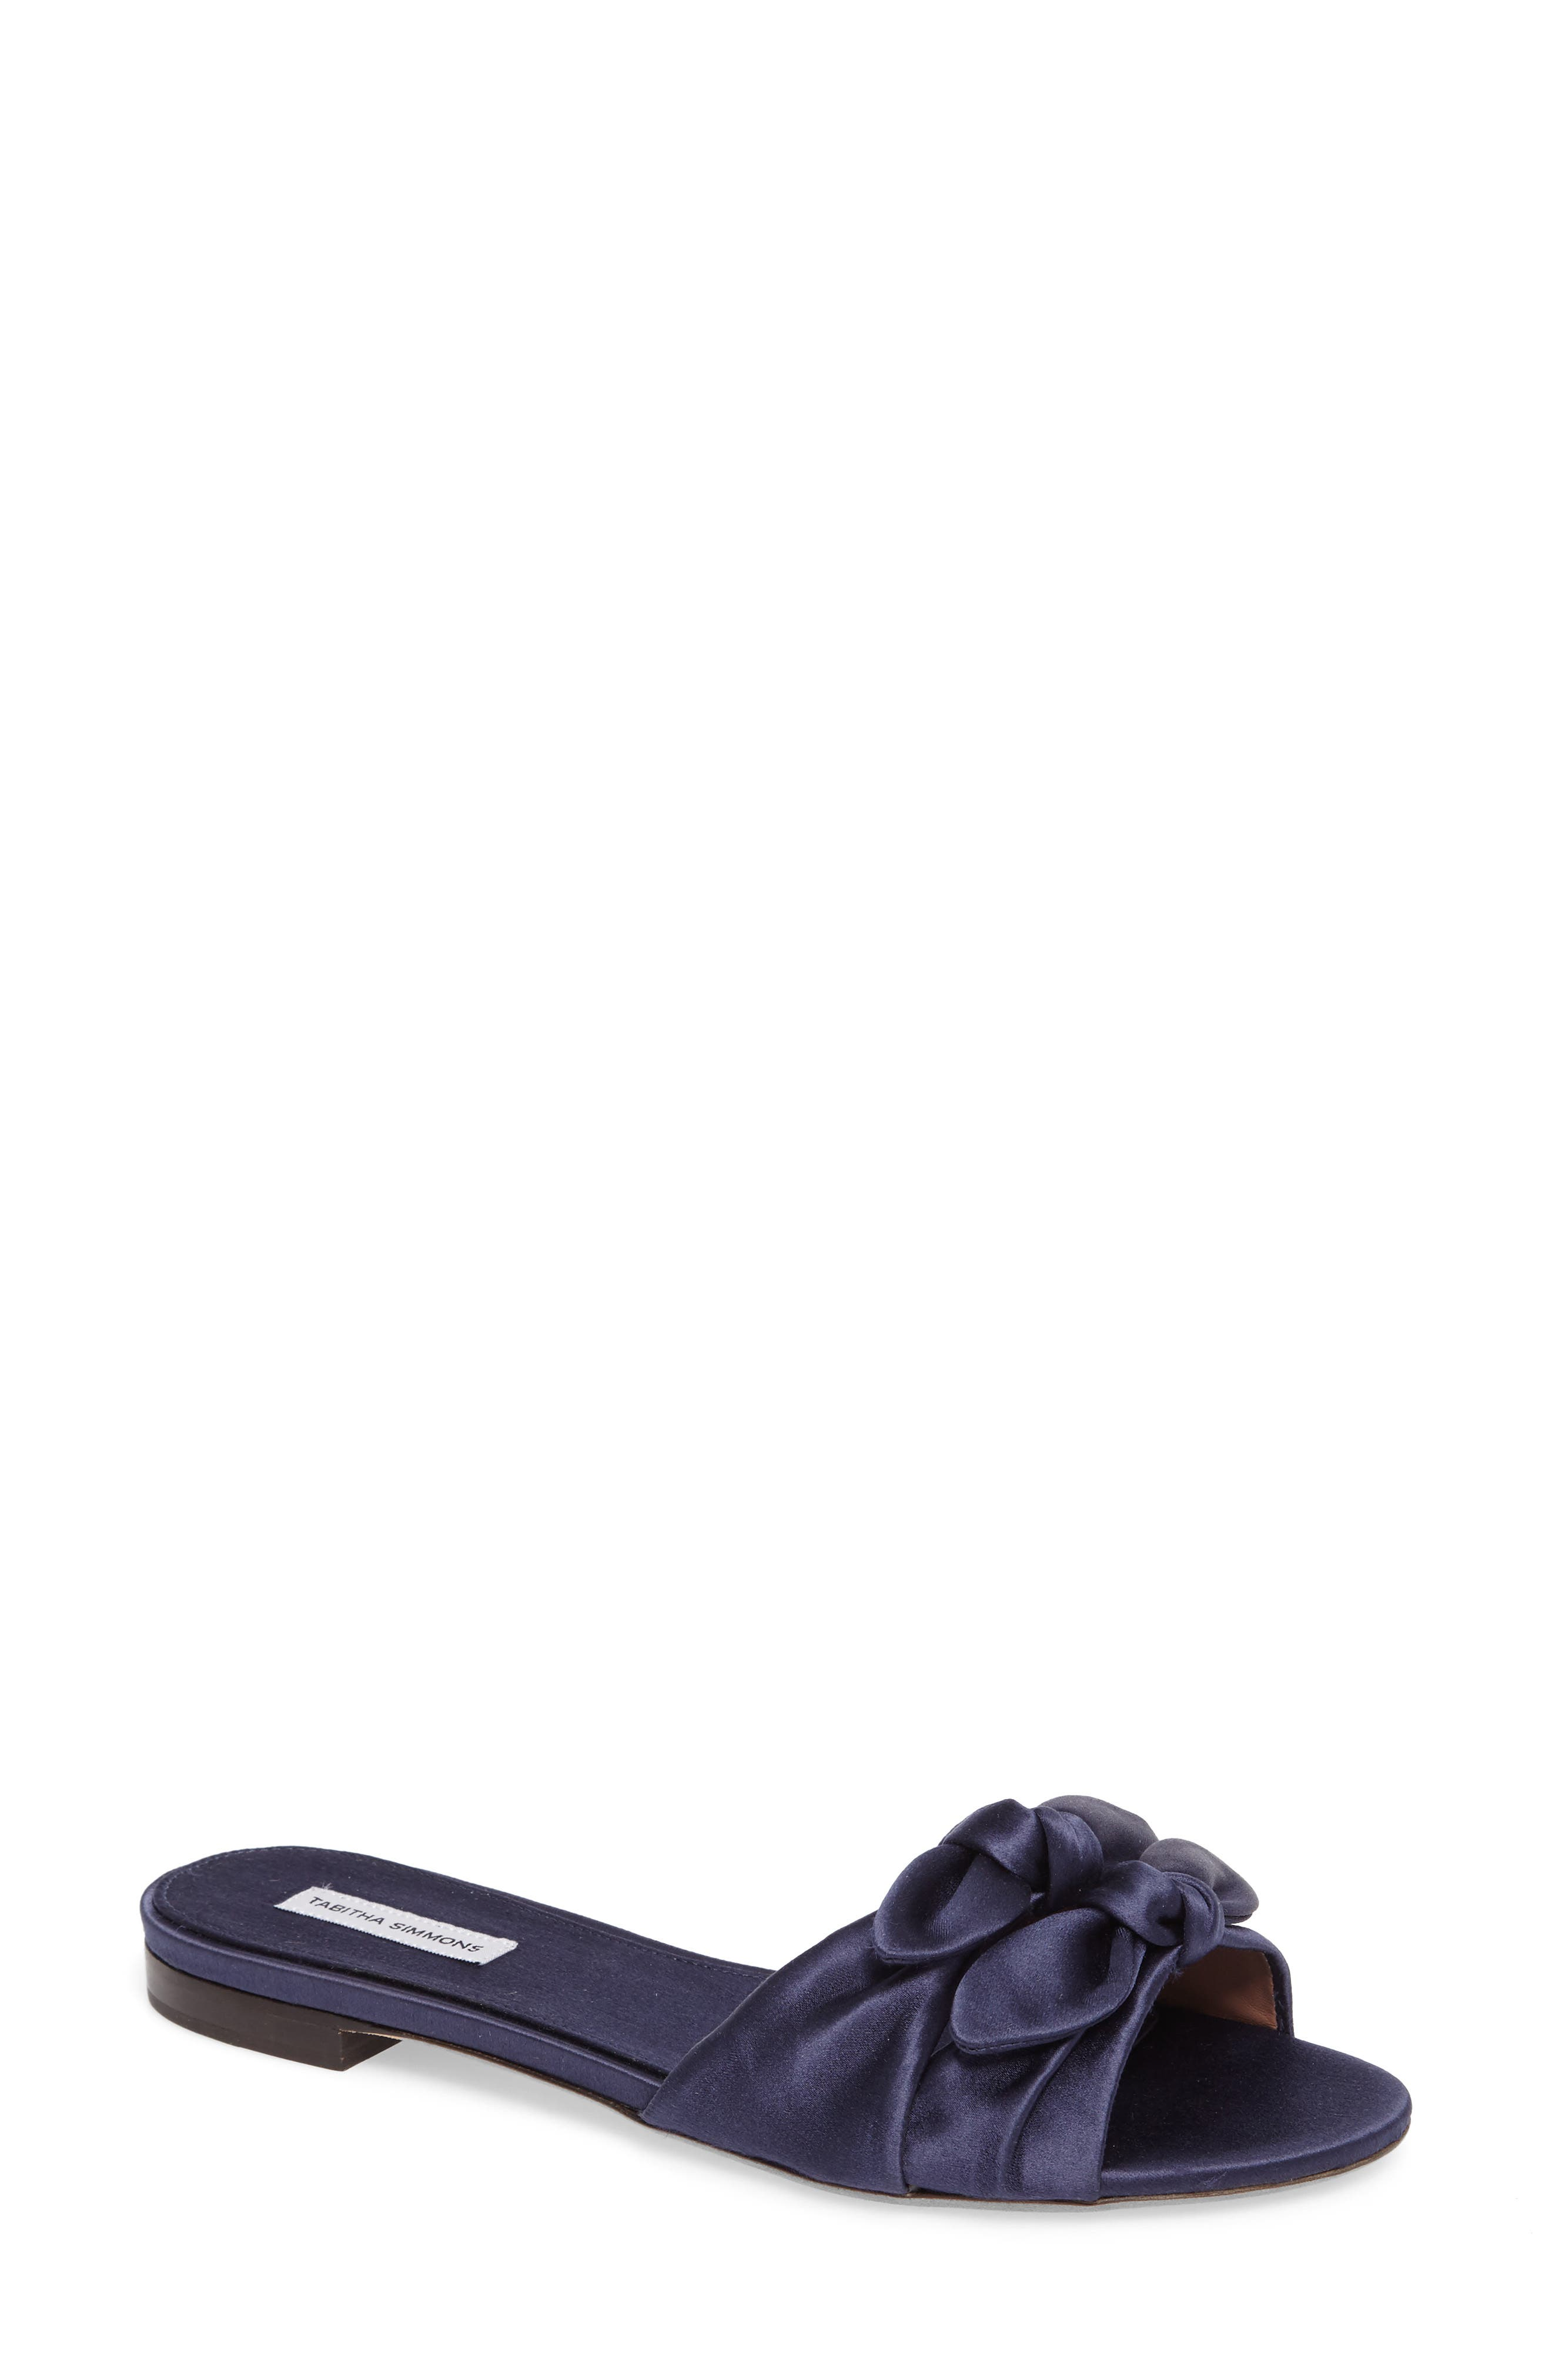 Alternate Image 1 Selected - Tabitha Simmons Cleo Knotted Bow Slide Sandal (Women)